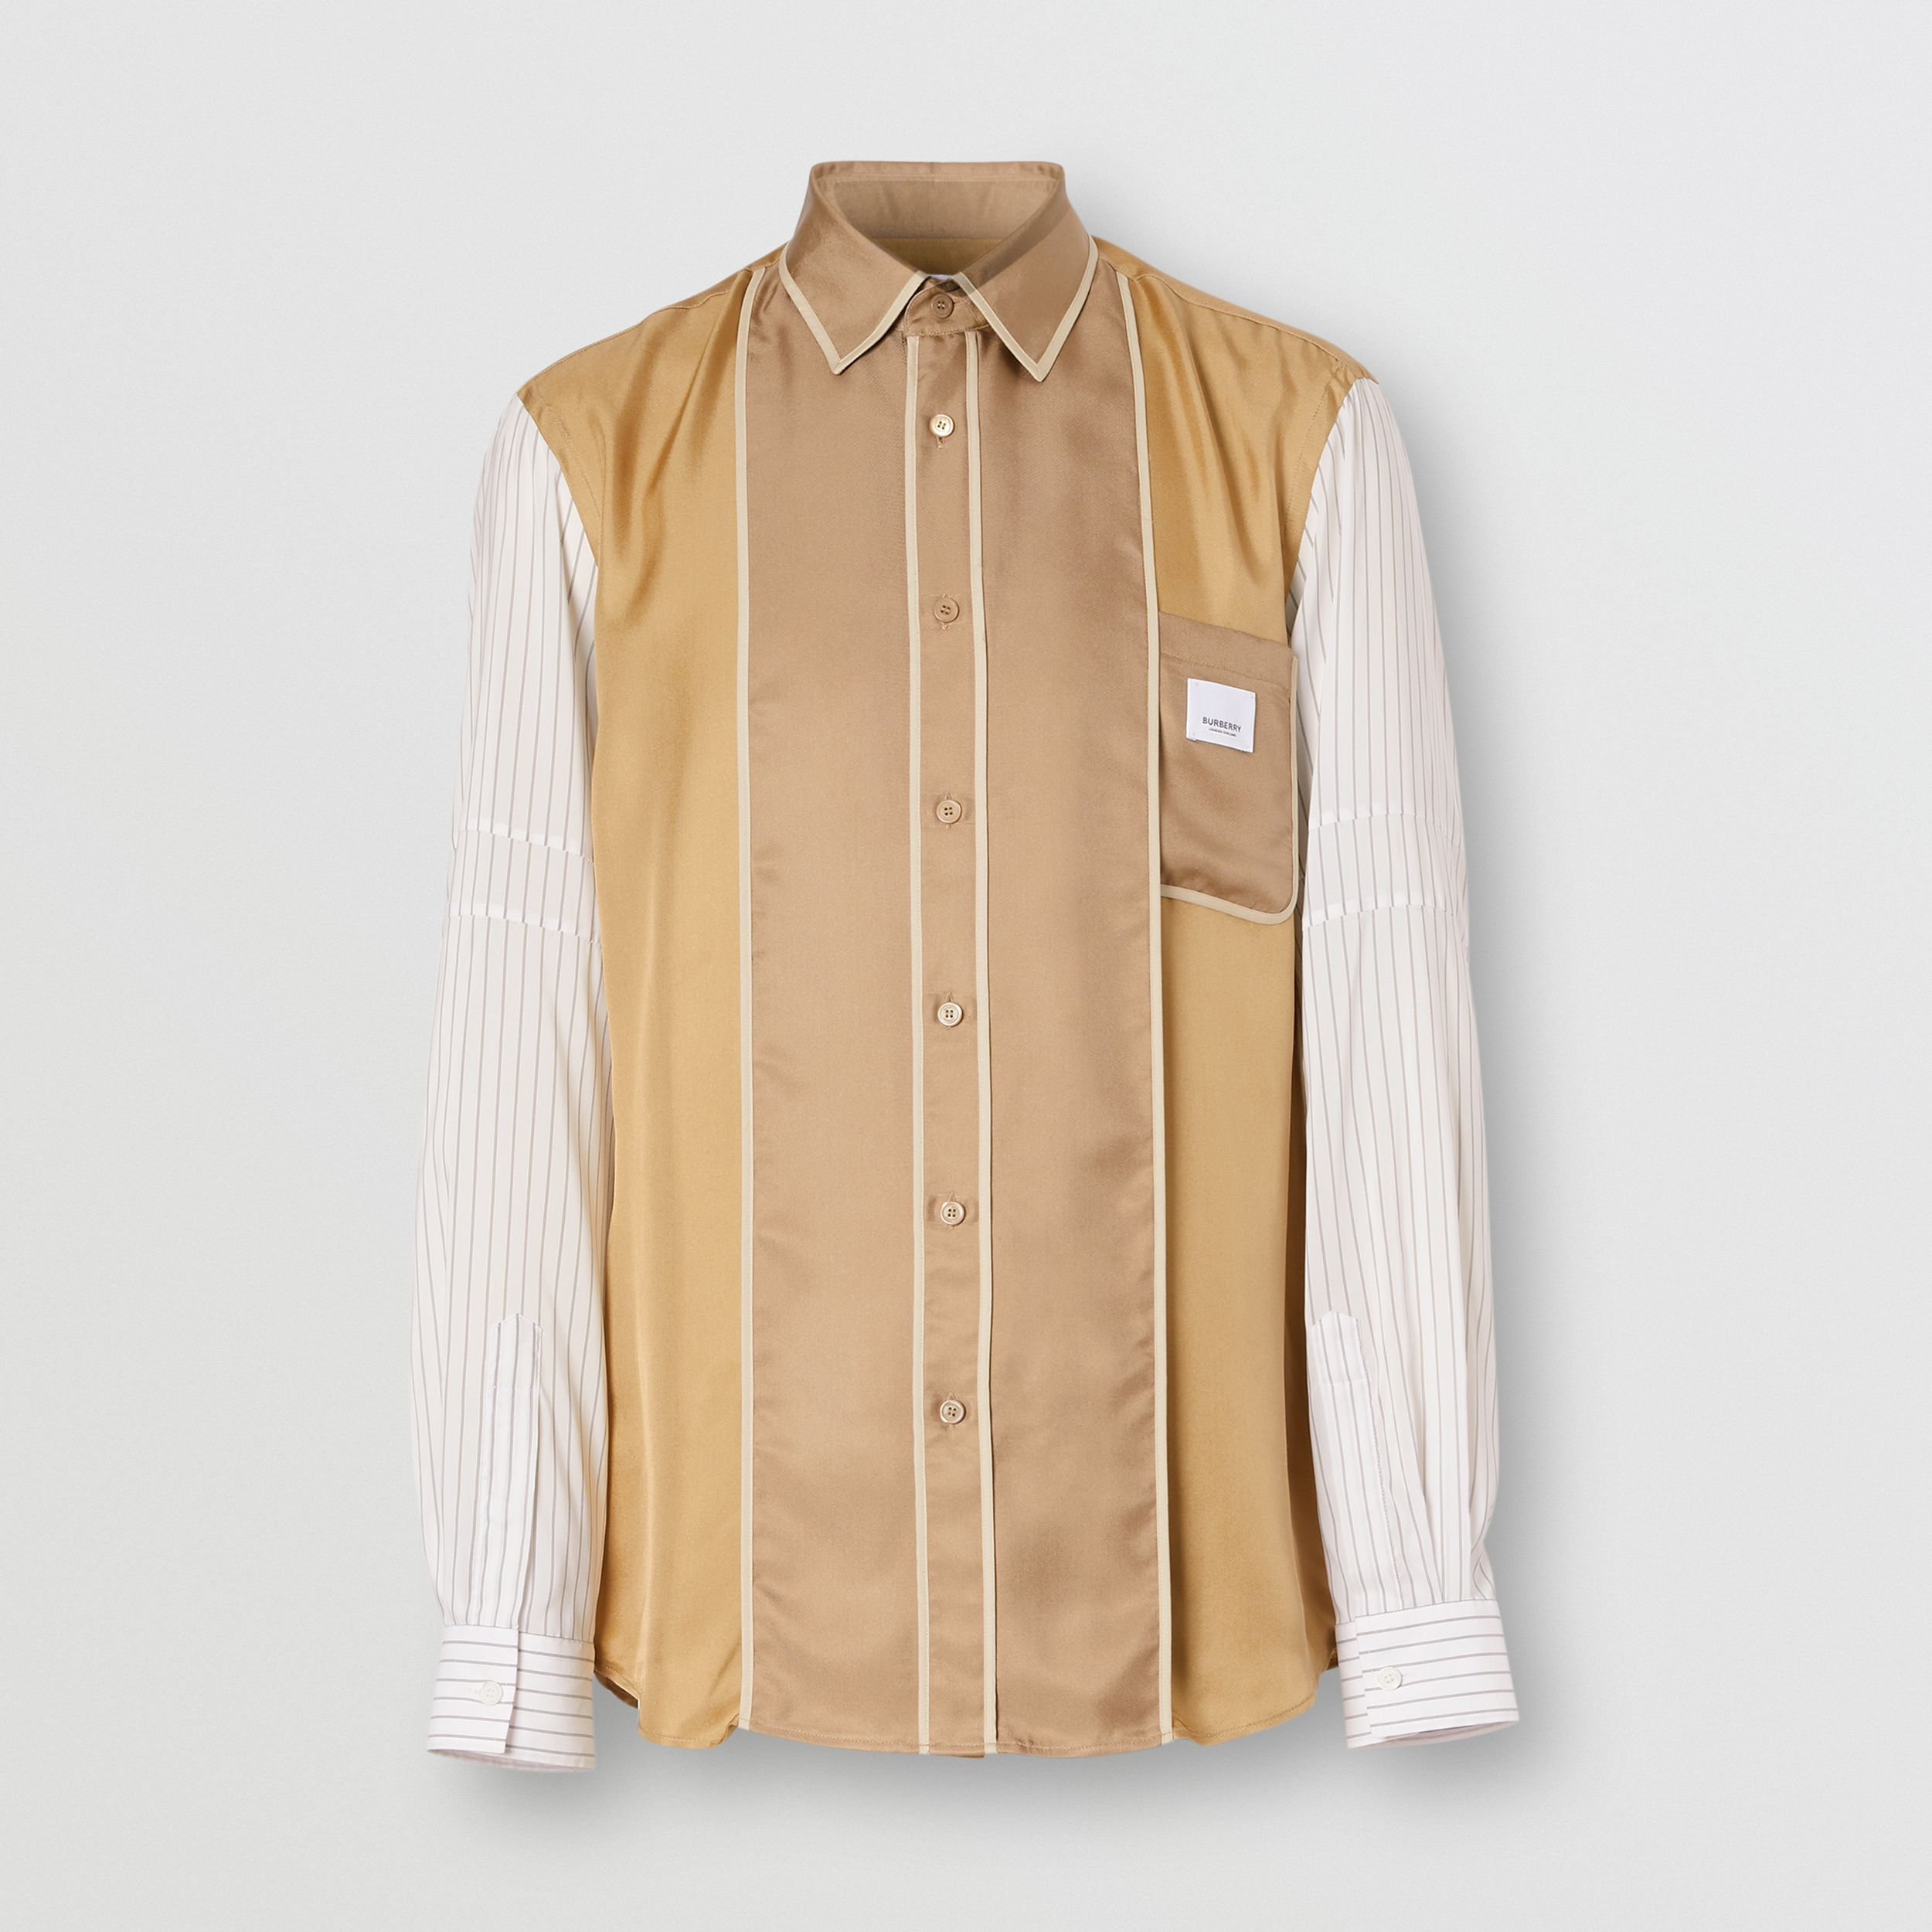 Classic Fit Panelled Silk and Pinstriped Shirt in Camel - Men | Burberry United Kingdom - 4